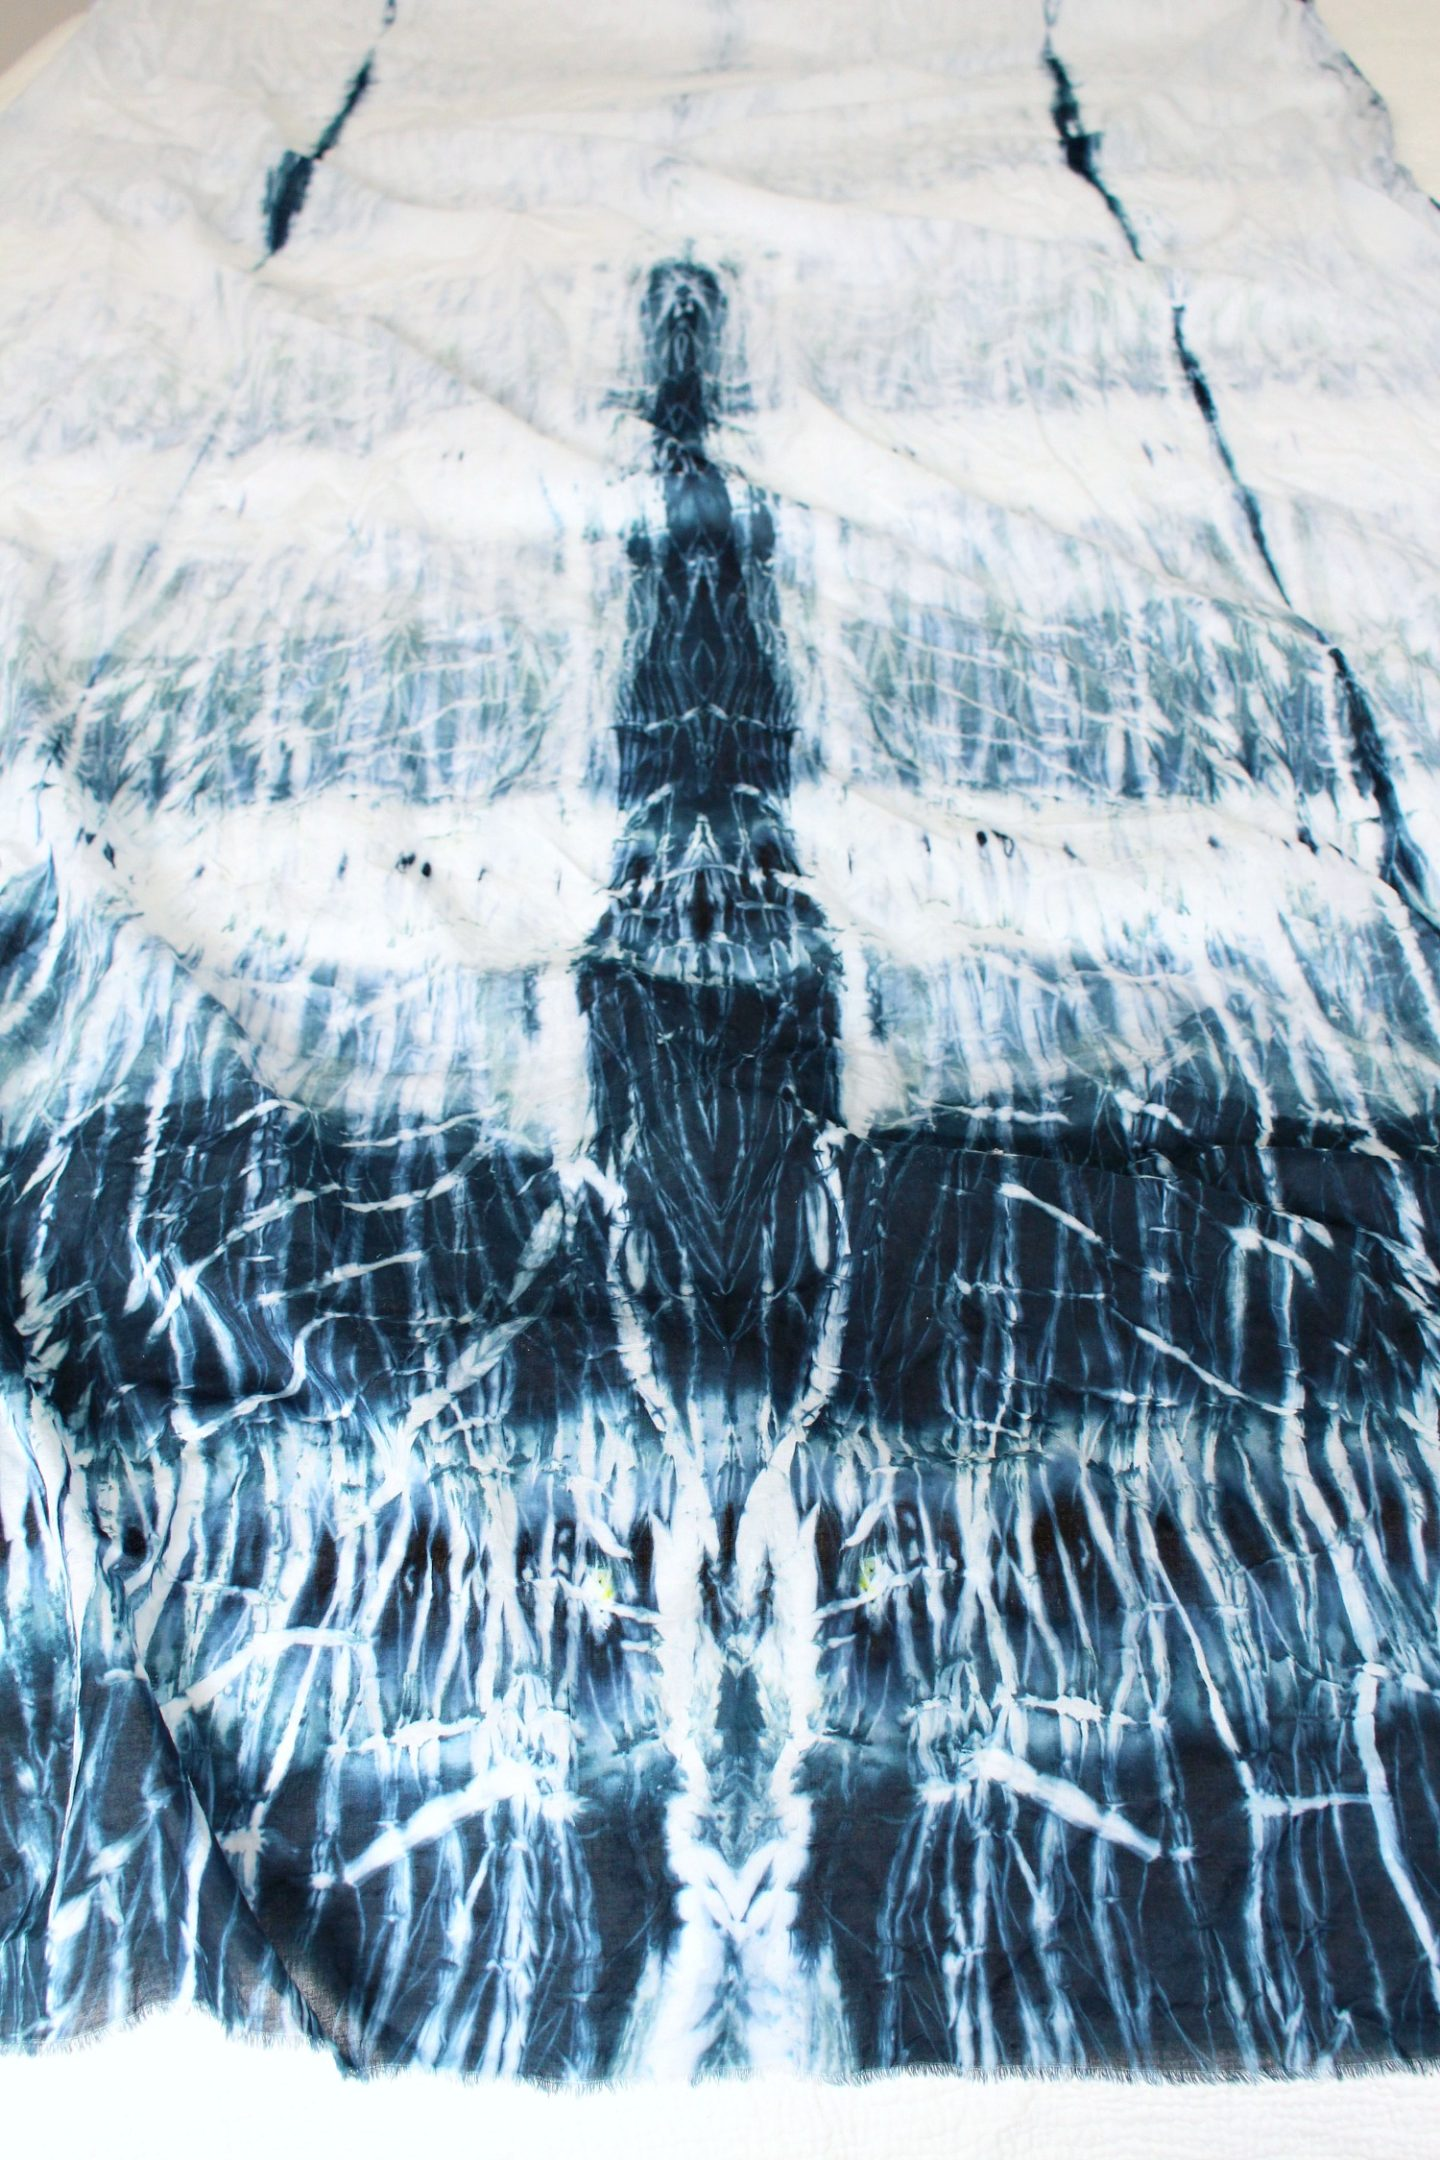 DIY Shibori Pole Dyeing Experiment | How to Dye Fabric with Pole Dyeing Method